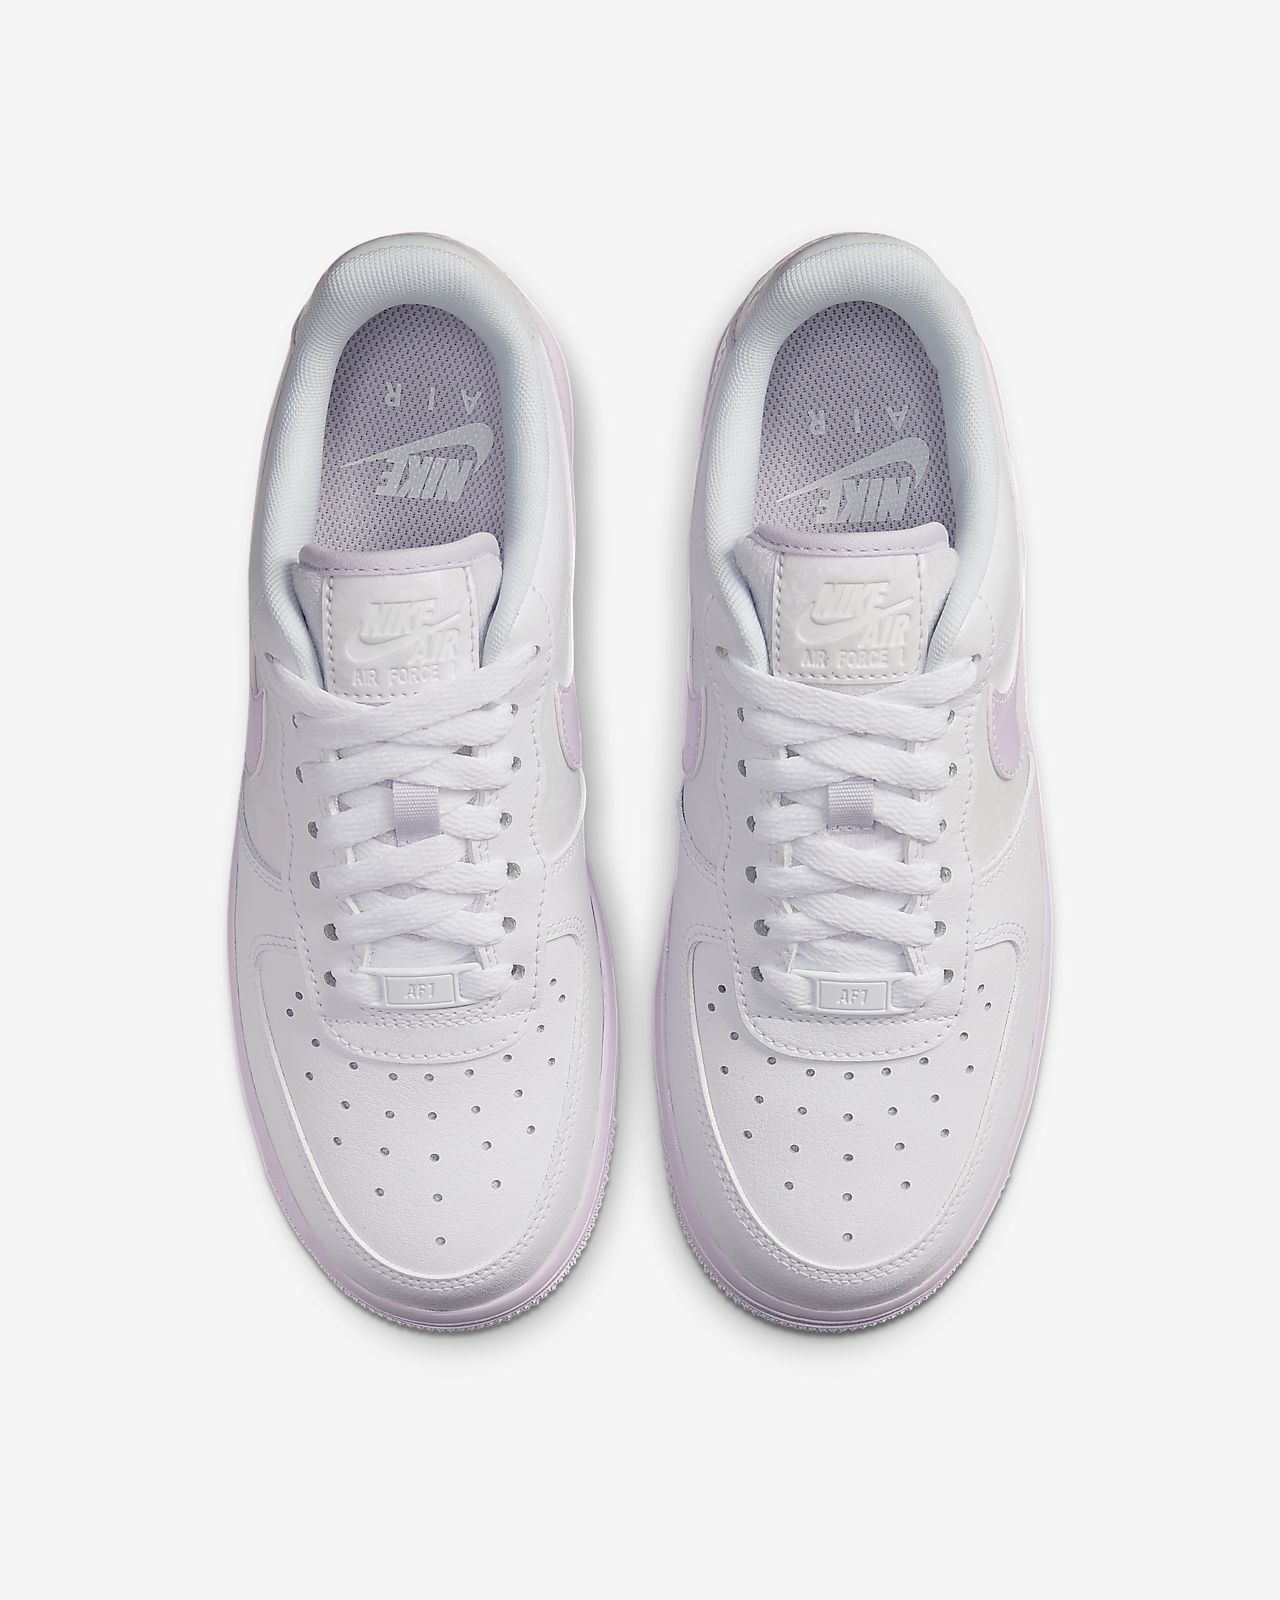 Air Force 1 Shoes. Nike NZ